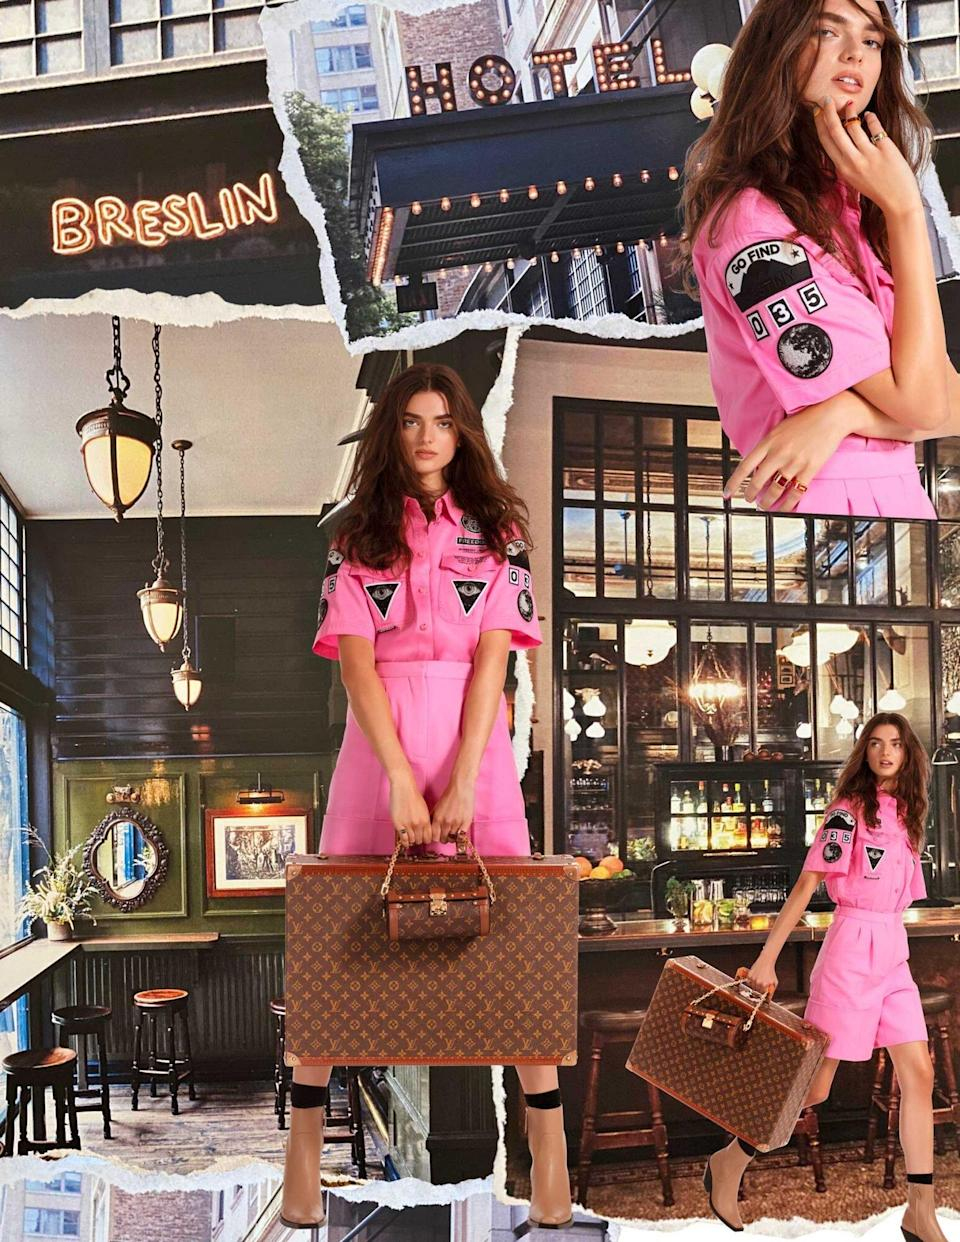 Model wearing a pink short flightsuit, superimposed over photos of the Ace Hotel New York